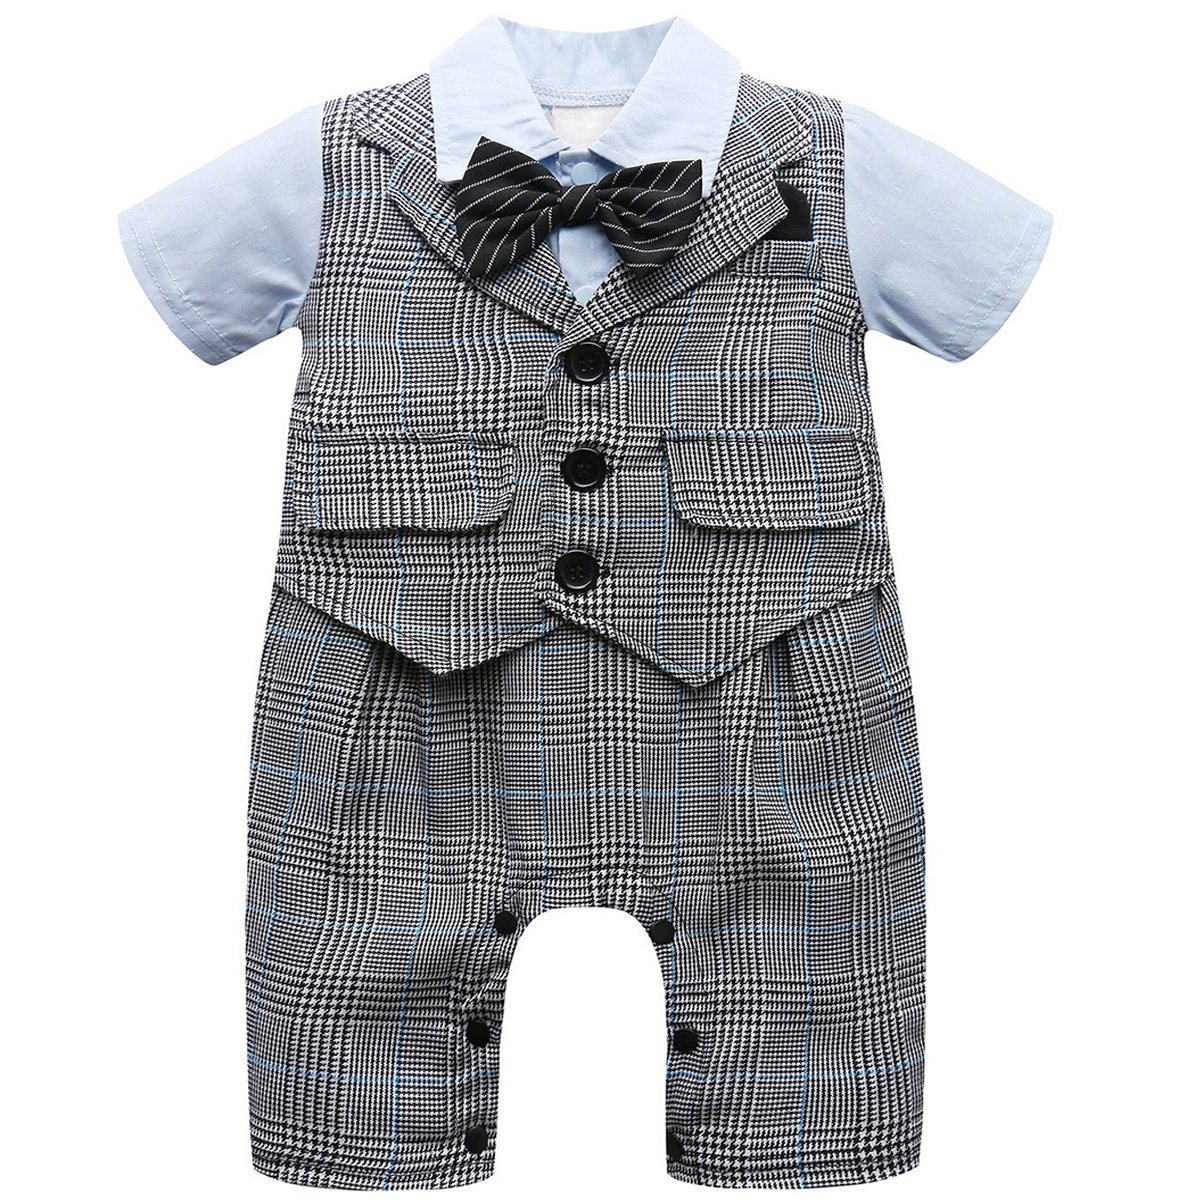 A&J Design Baby Boy Gentleman Romper with Bow Tie Formal Jumpsuit